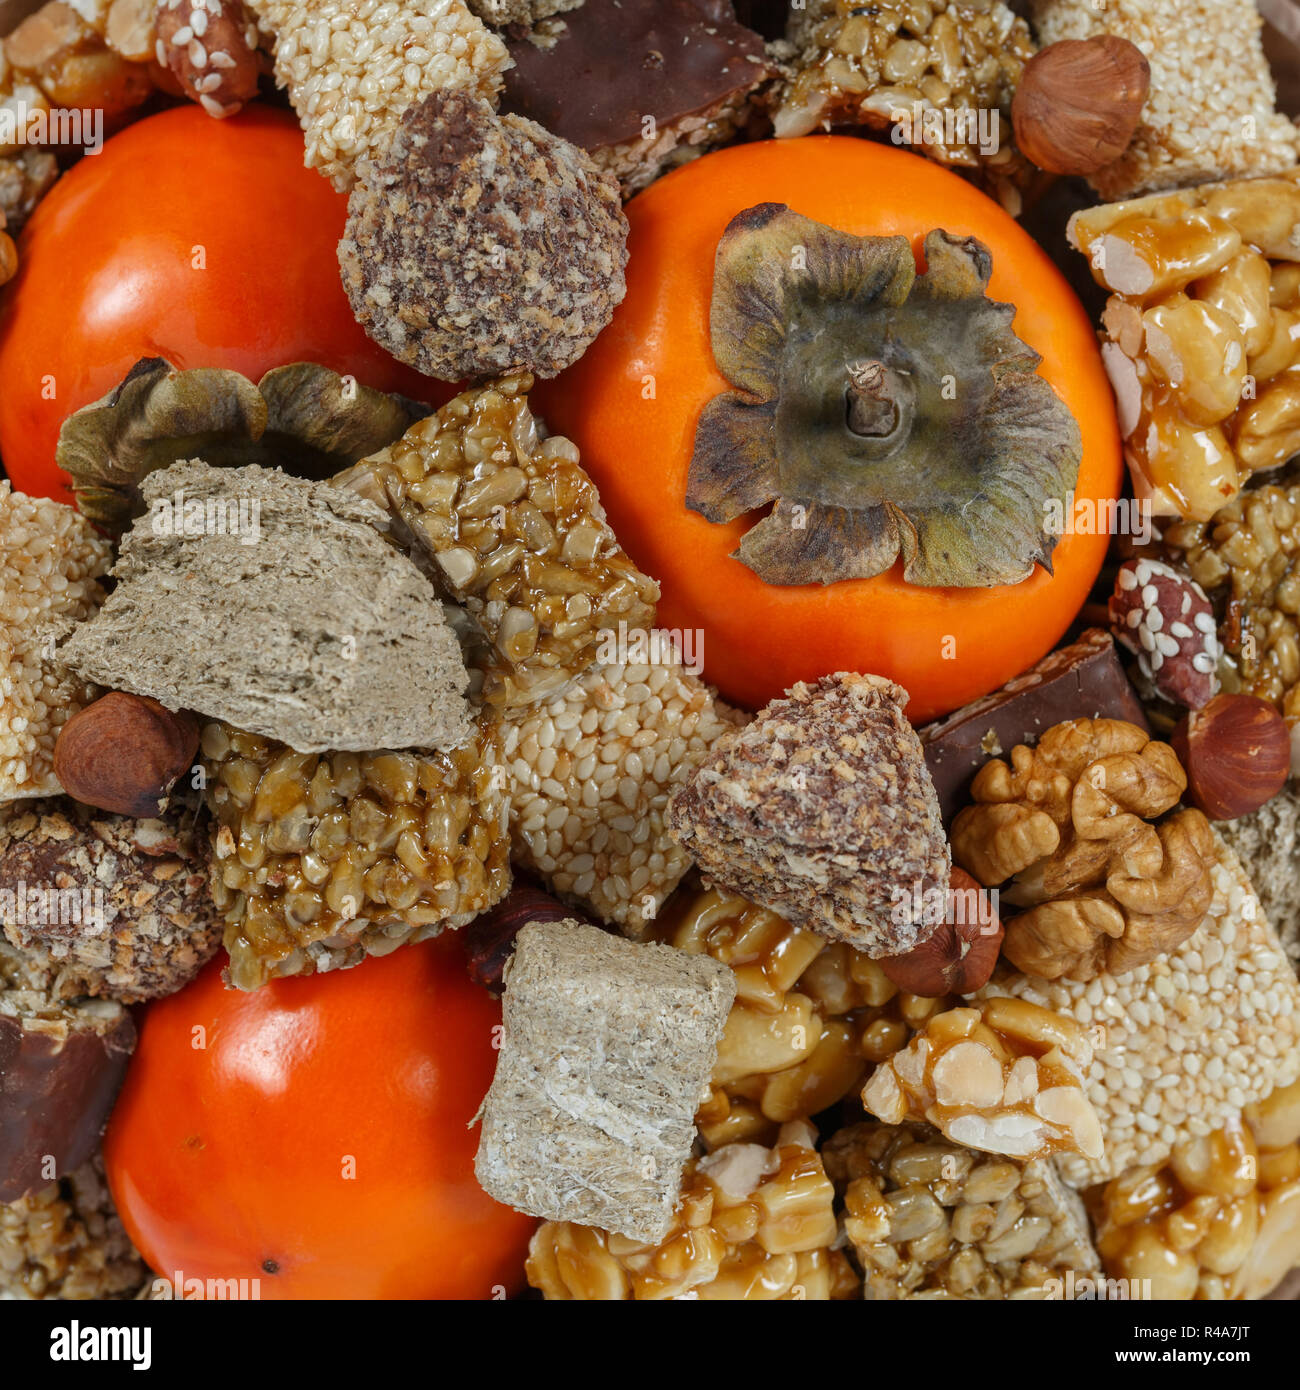 Halva, sesame snaps, nuts, chocolates and persimmons close-up as background or backdrop - Stock Image